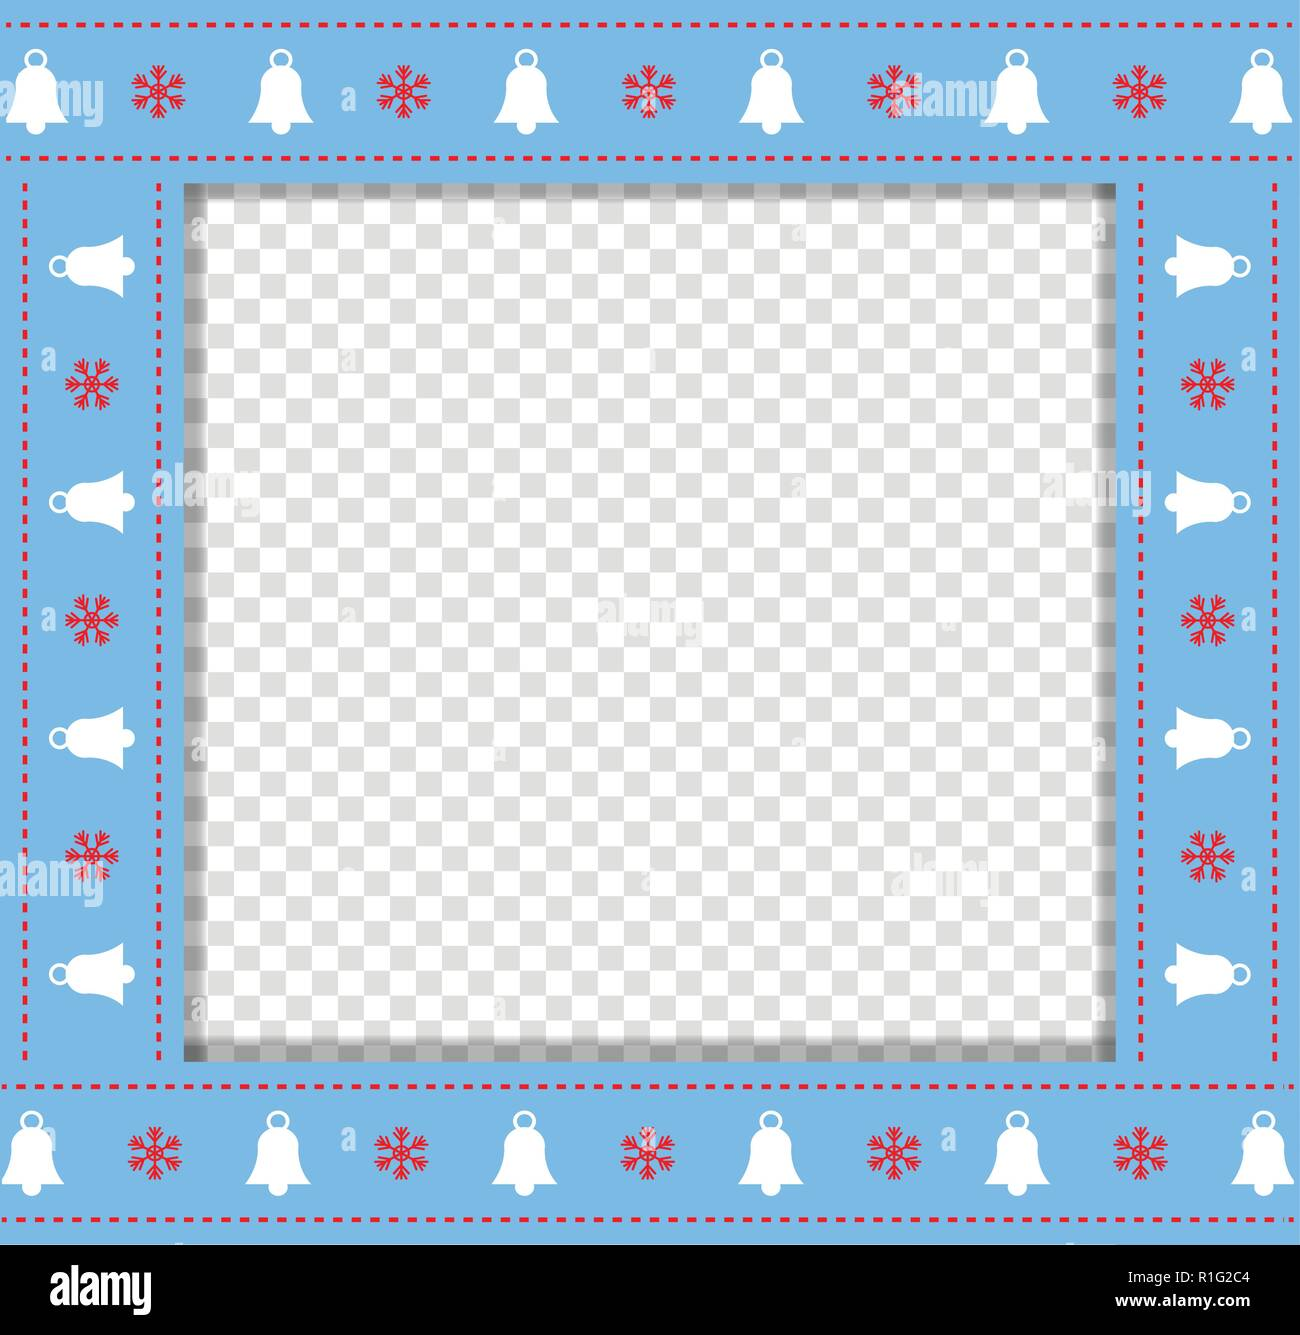 cute christmas or new year blue border with xmas bells and snowflakes pattern isolated on transparent background vector illustration square template